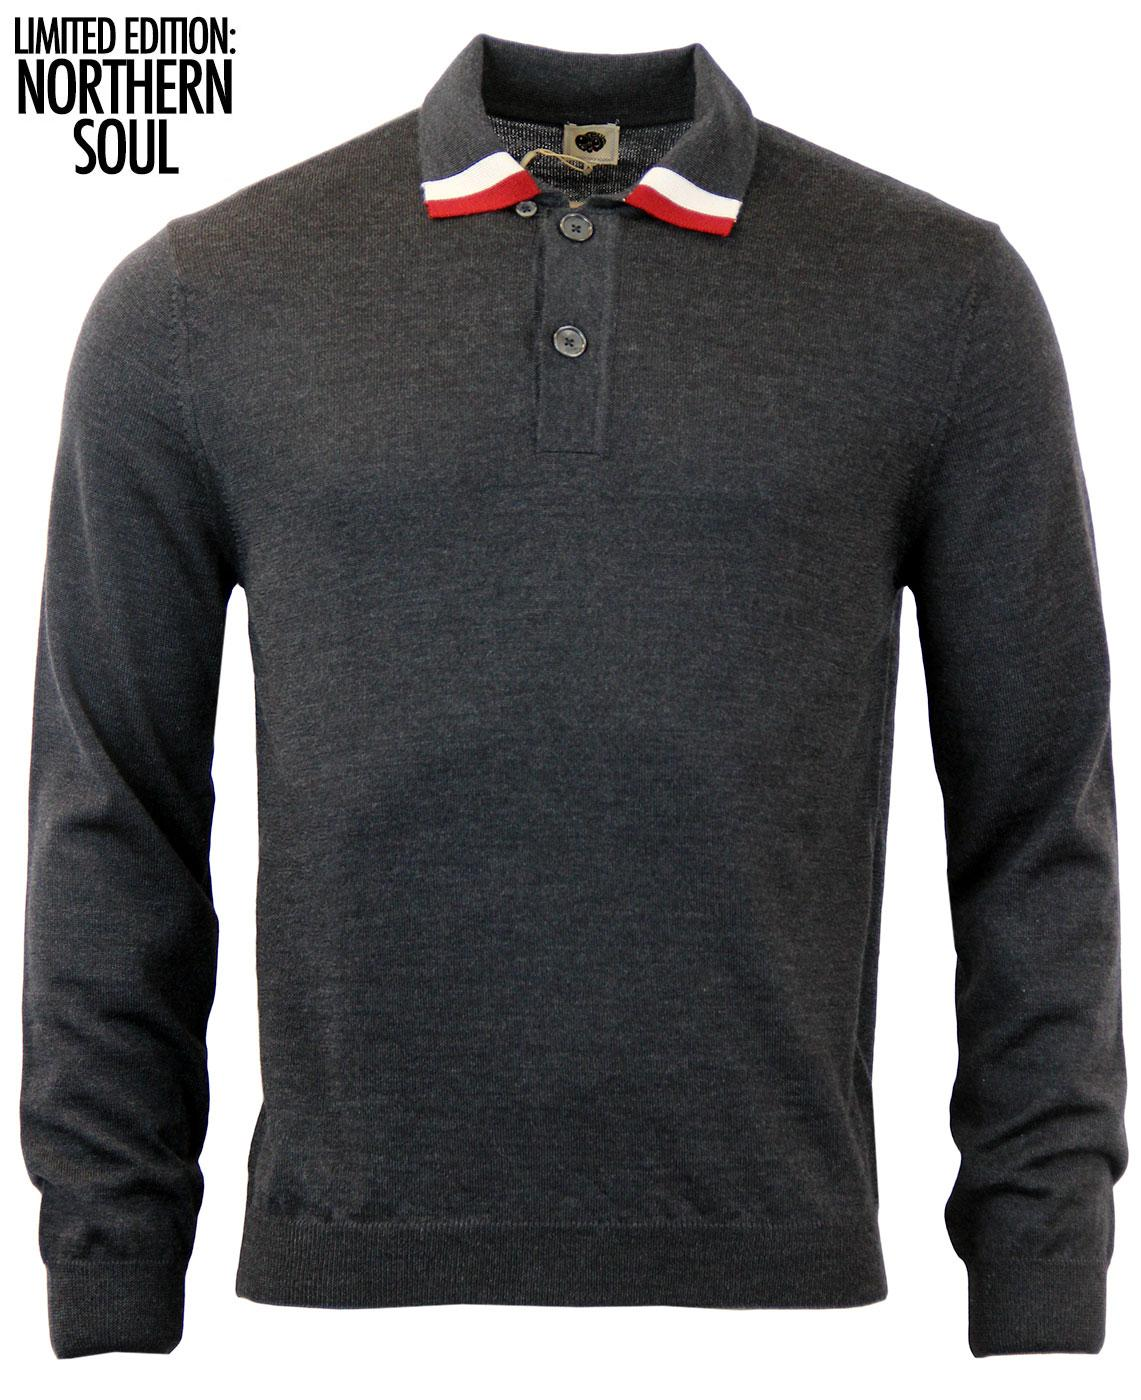 Marvin PRETTY GREEN Retro Northern Soul Knit Polo